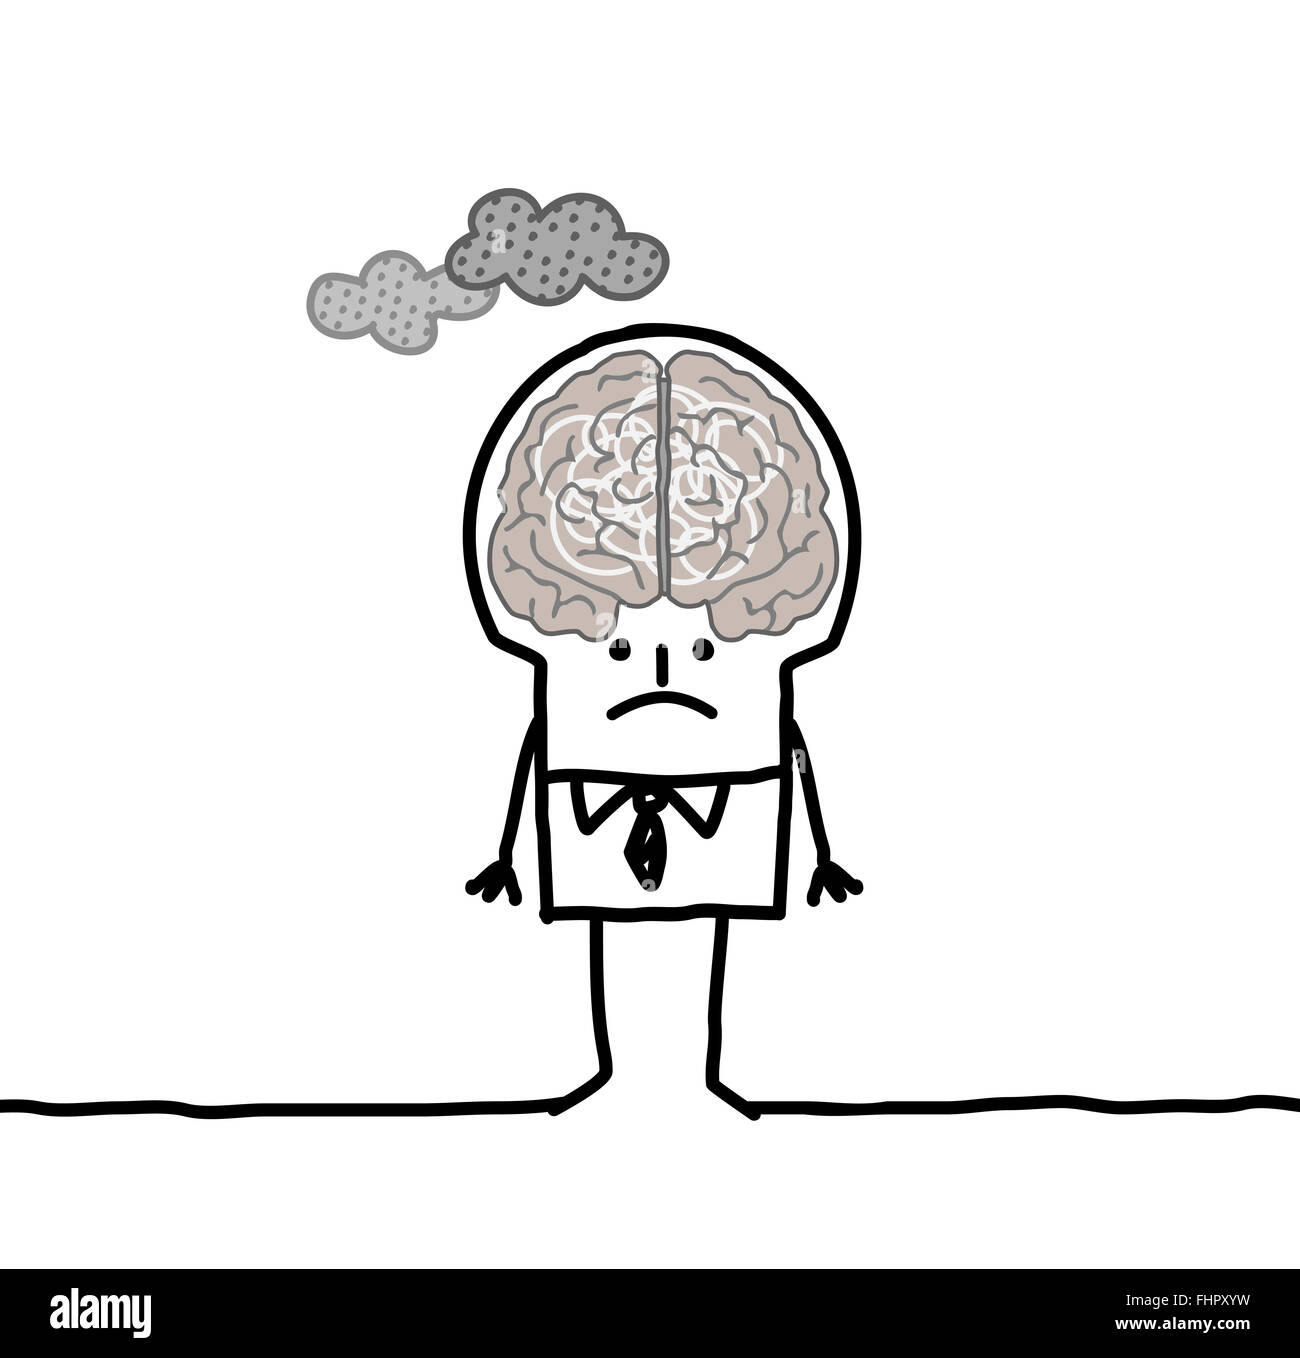 Cartoon big polluted gray brain man stock photo 97005101 alamy cartoon big polluted gray brain man thecheapjerseys Gallery